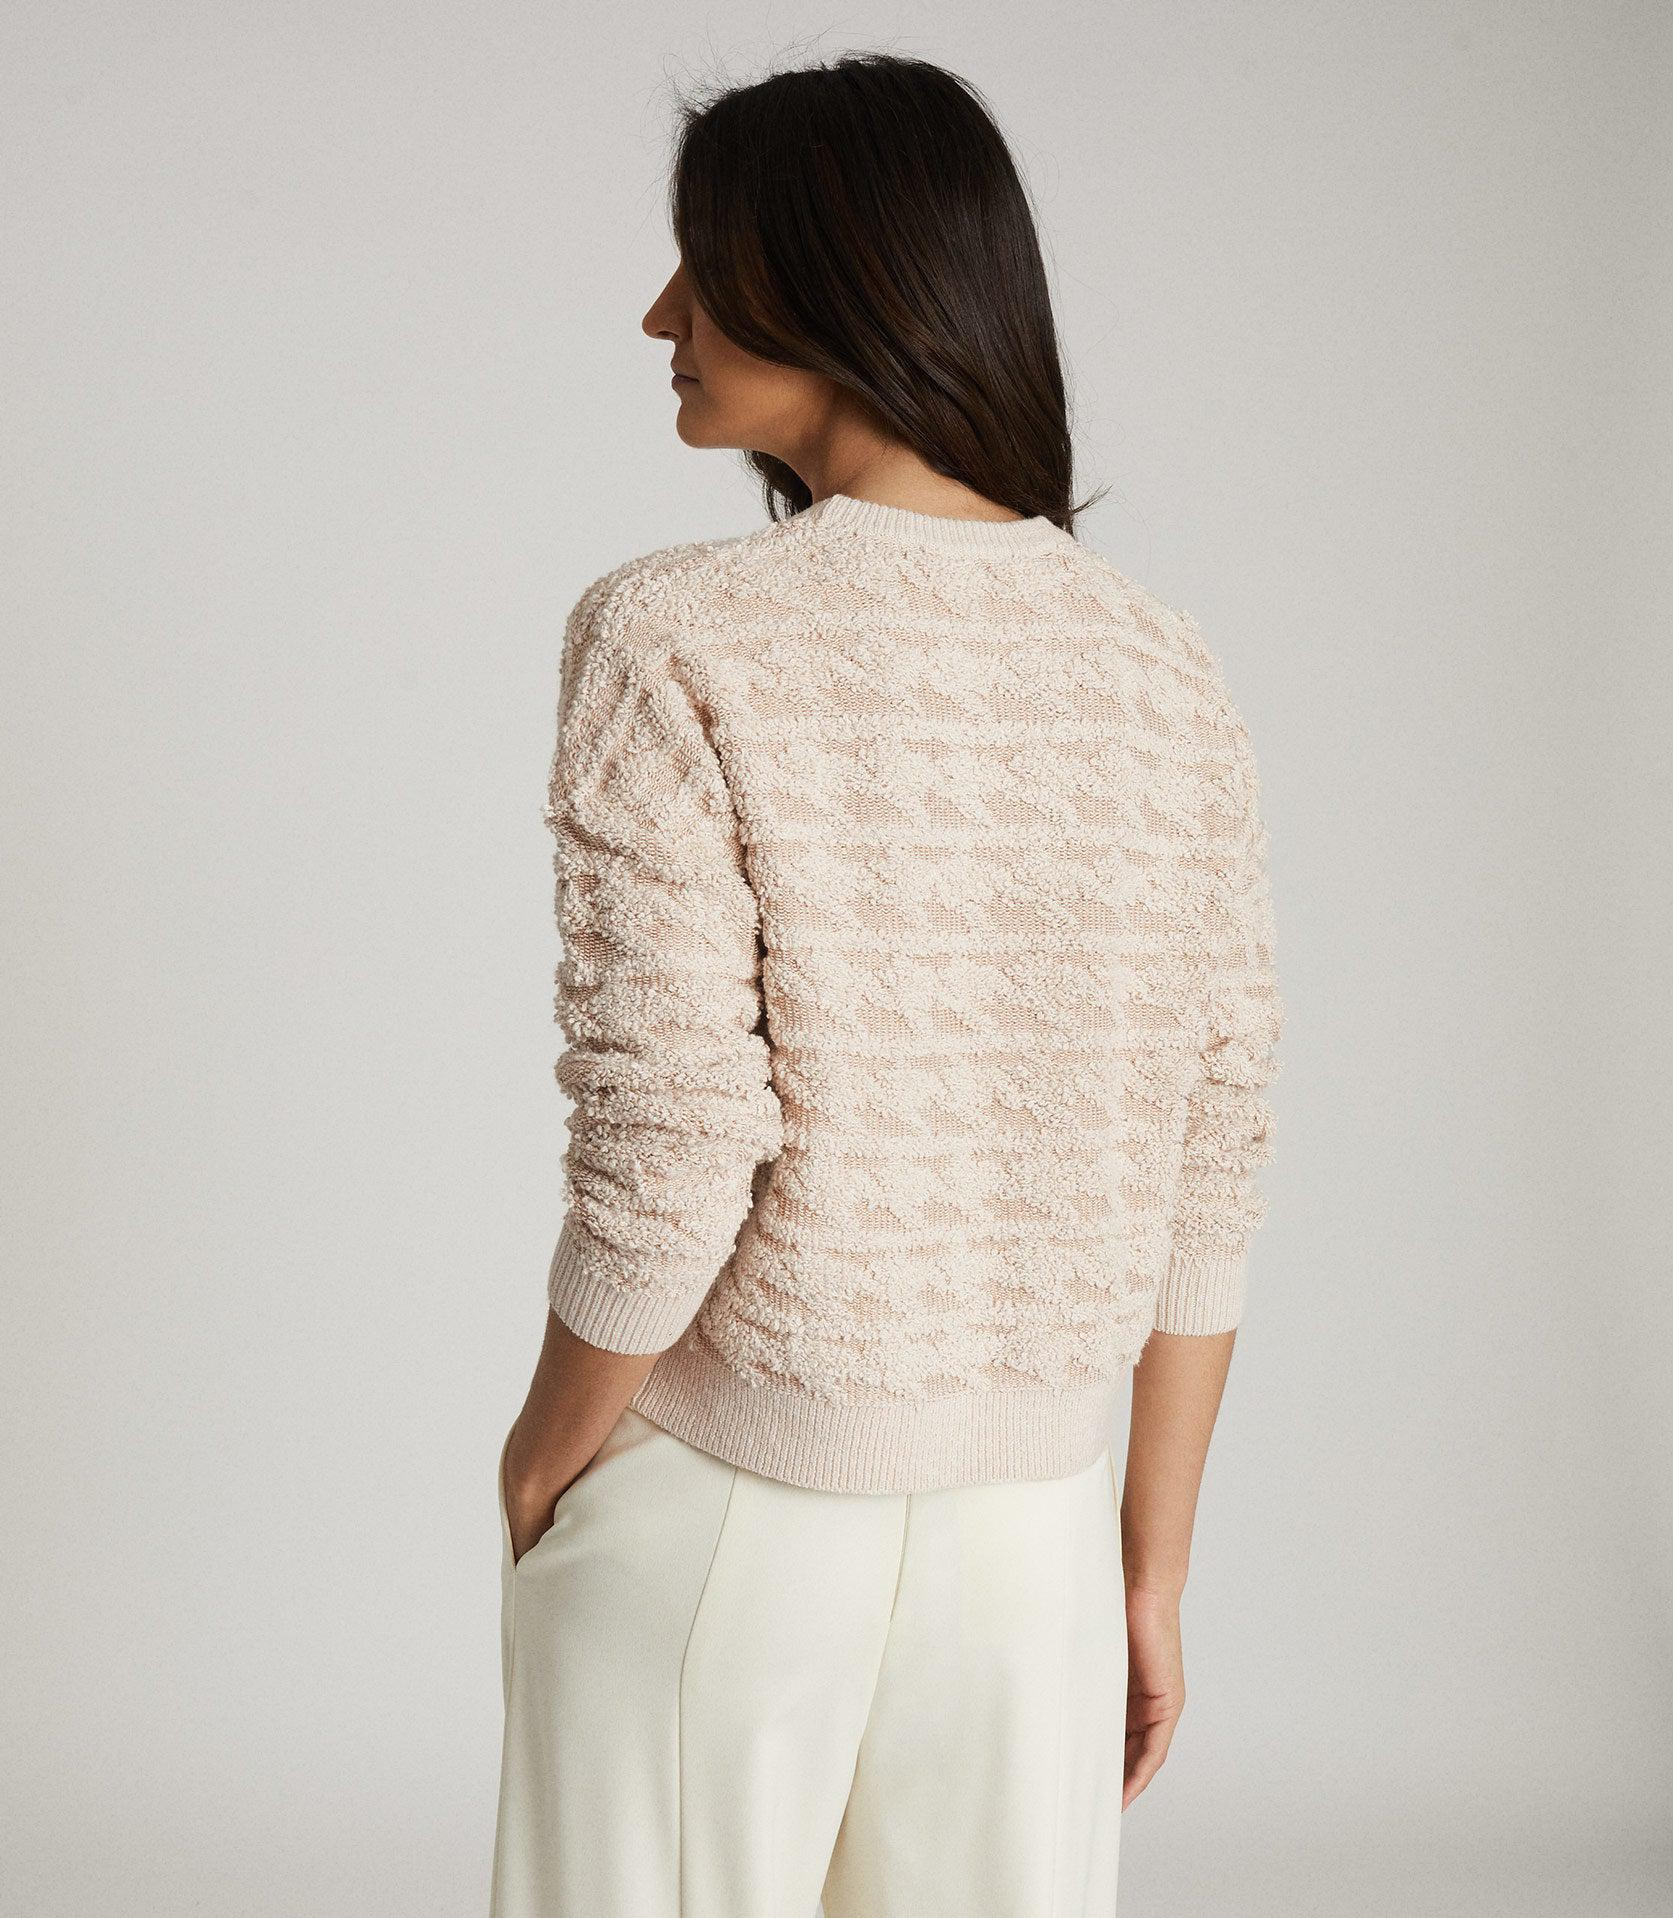 OTTO - TEXTURED PATTERNED JUMPER 2